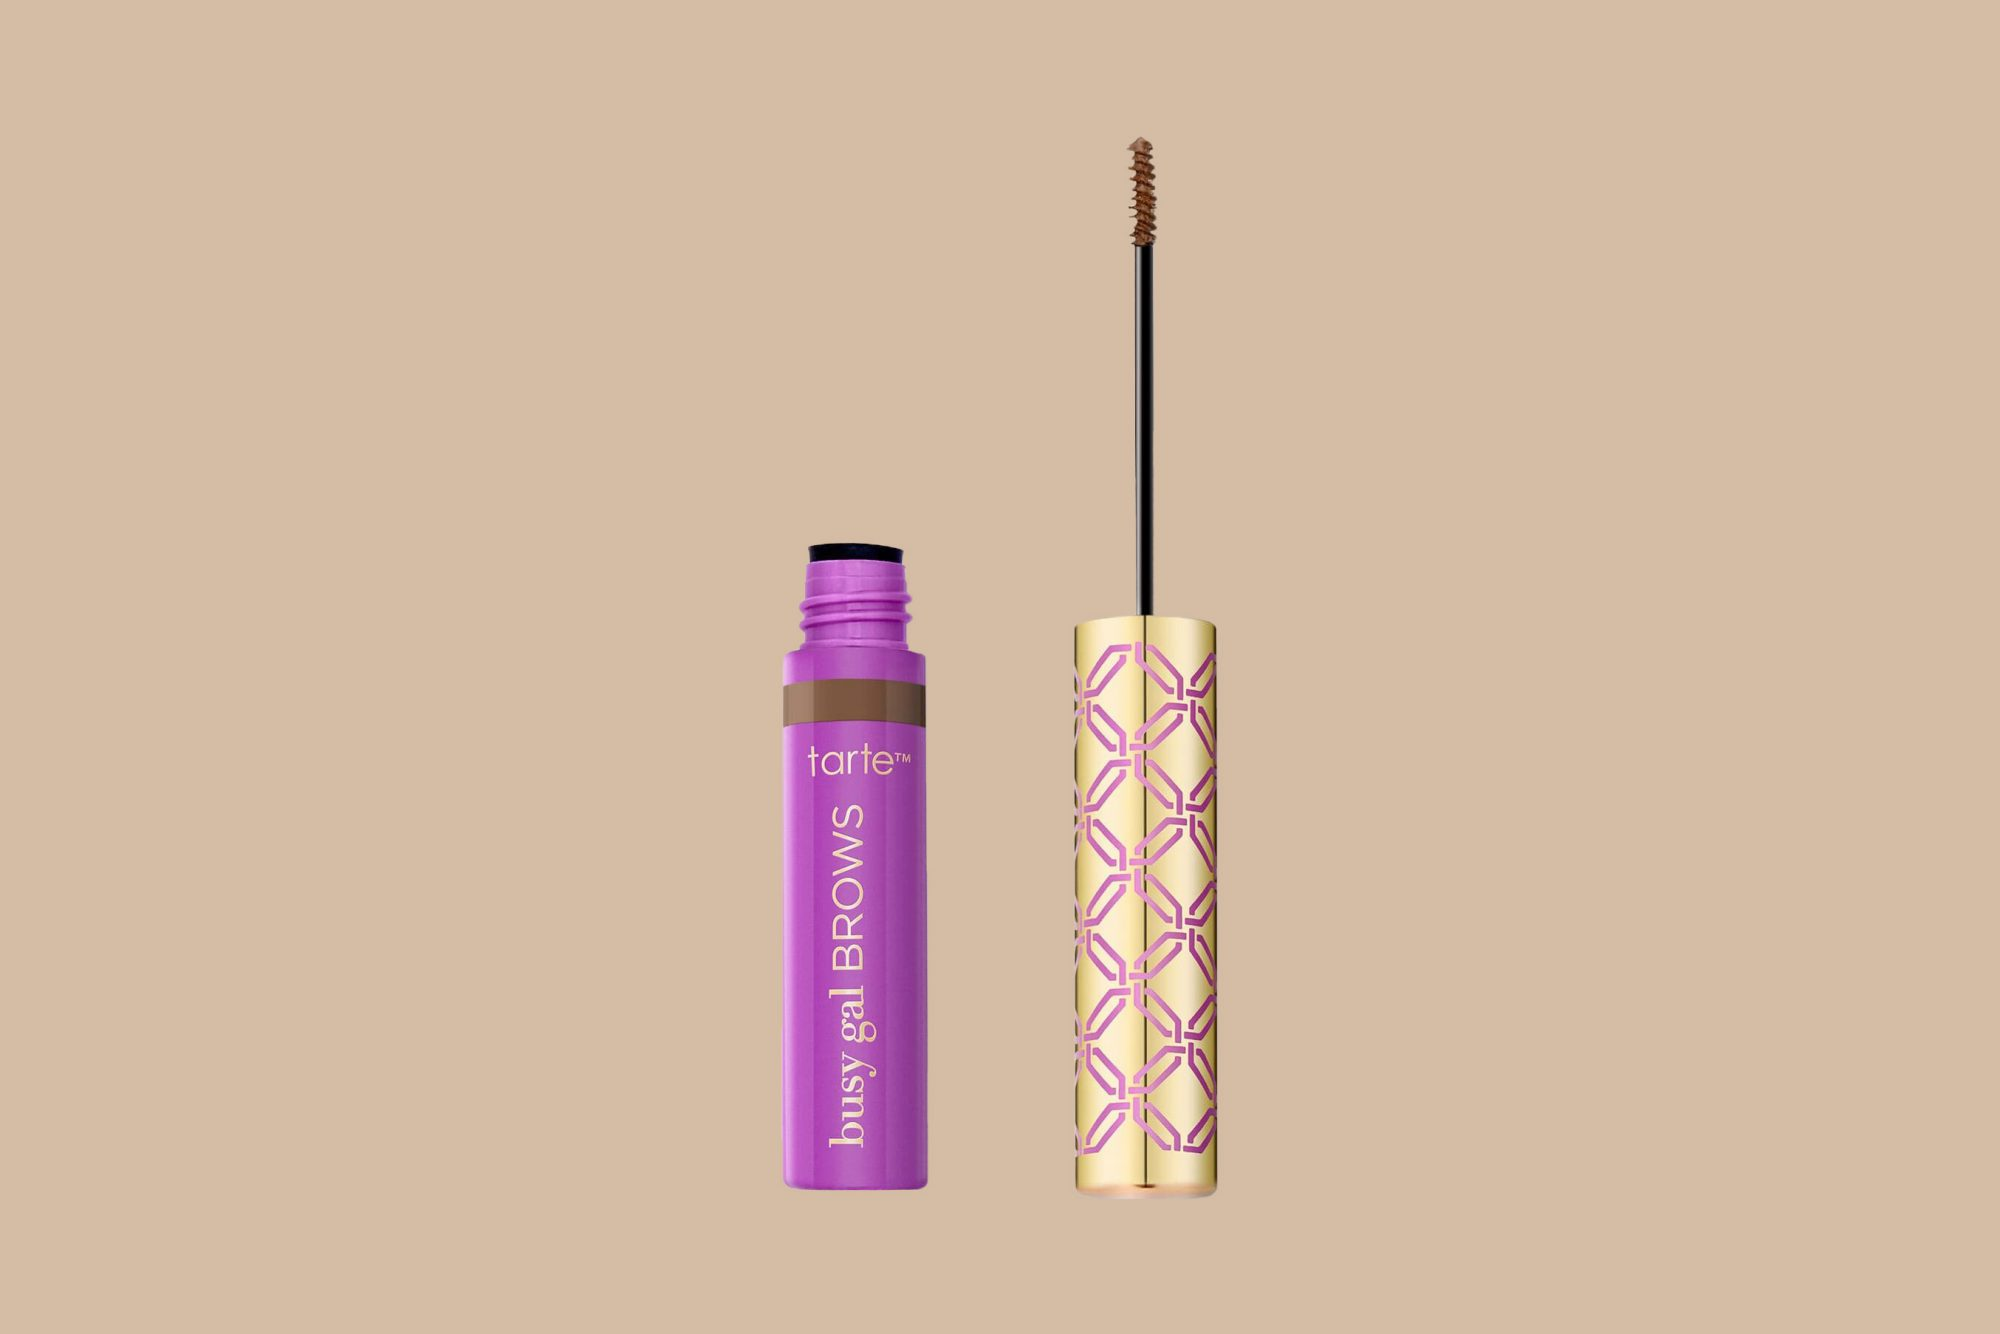 Tarte Double Duty Beauty Busy Gal BROWS Tinted Brow Gel